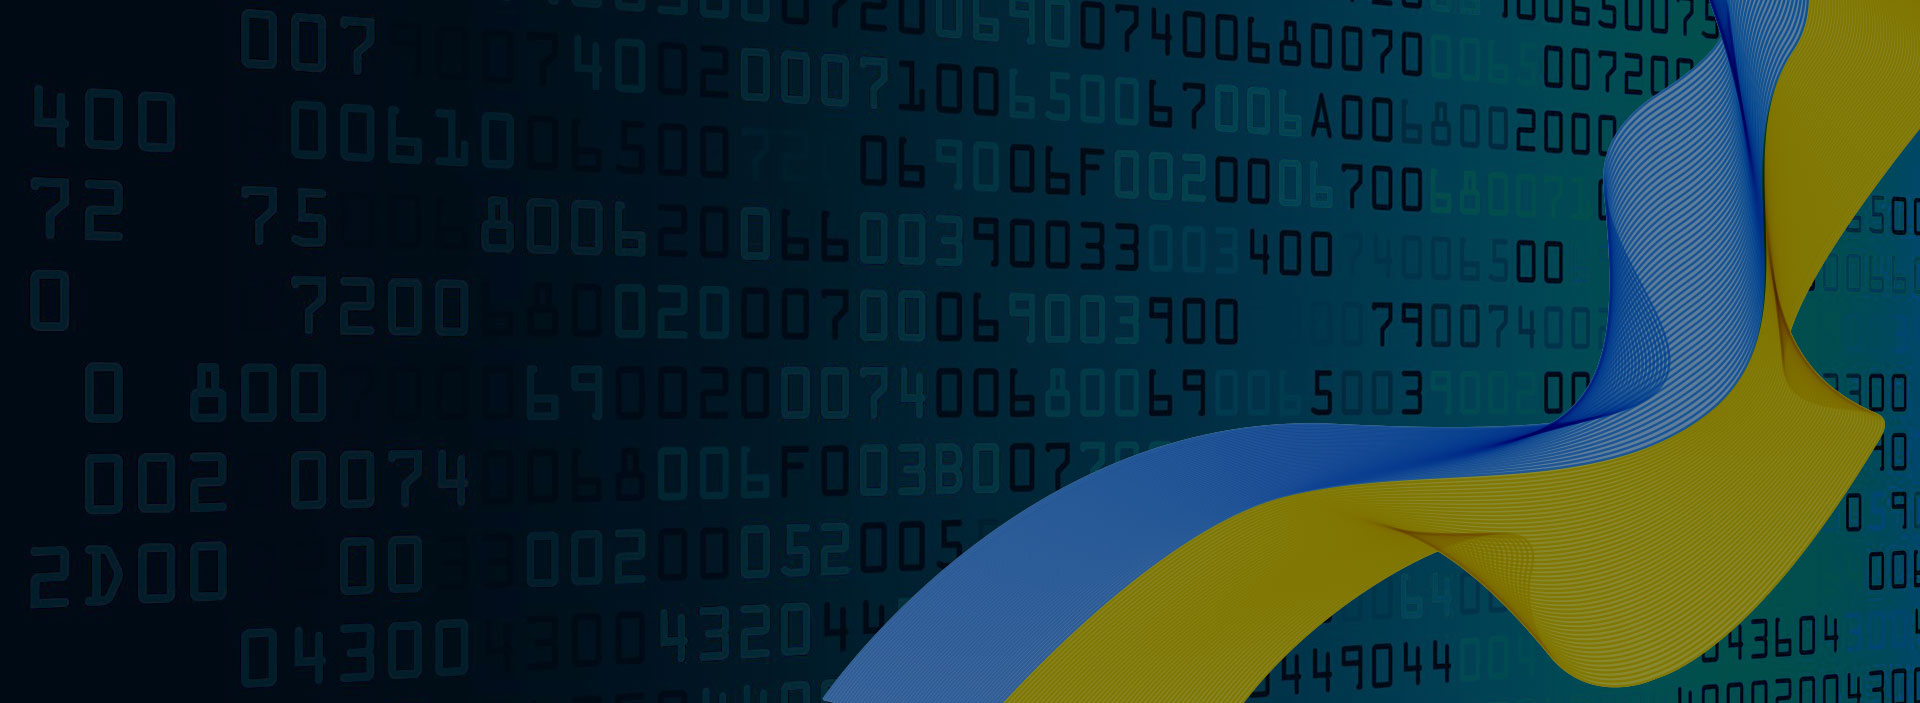 Is Ukraine safe for software development offshoring? - Part One - Data protection and information security